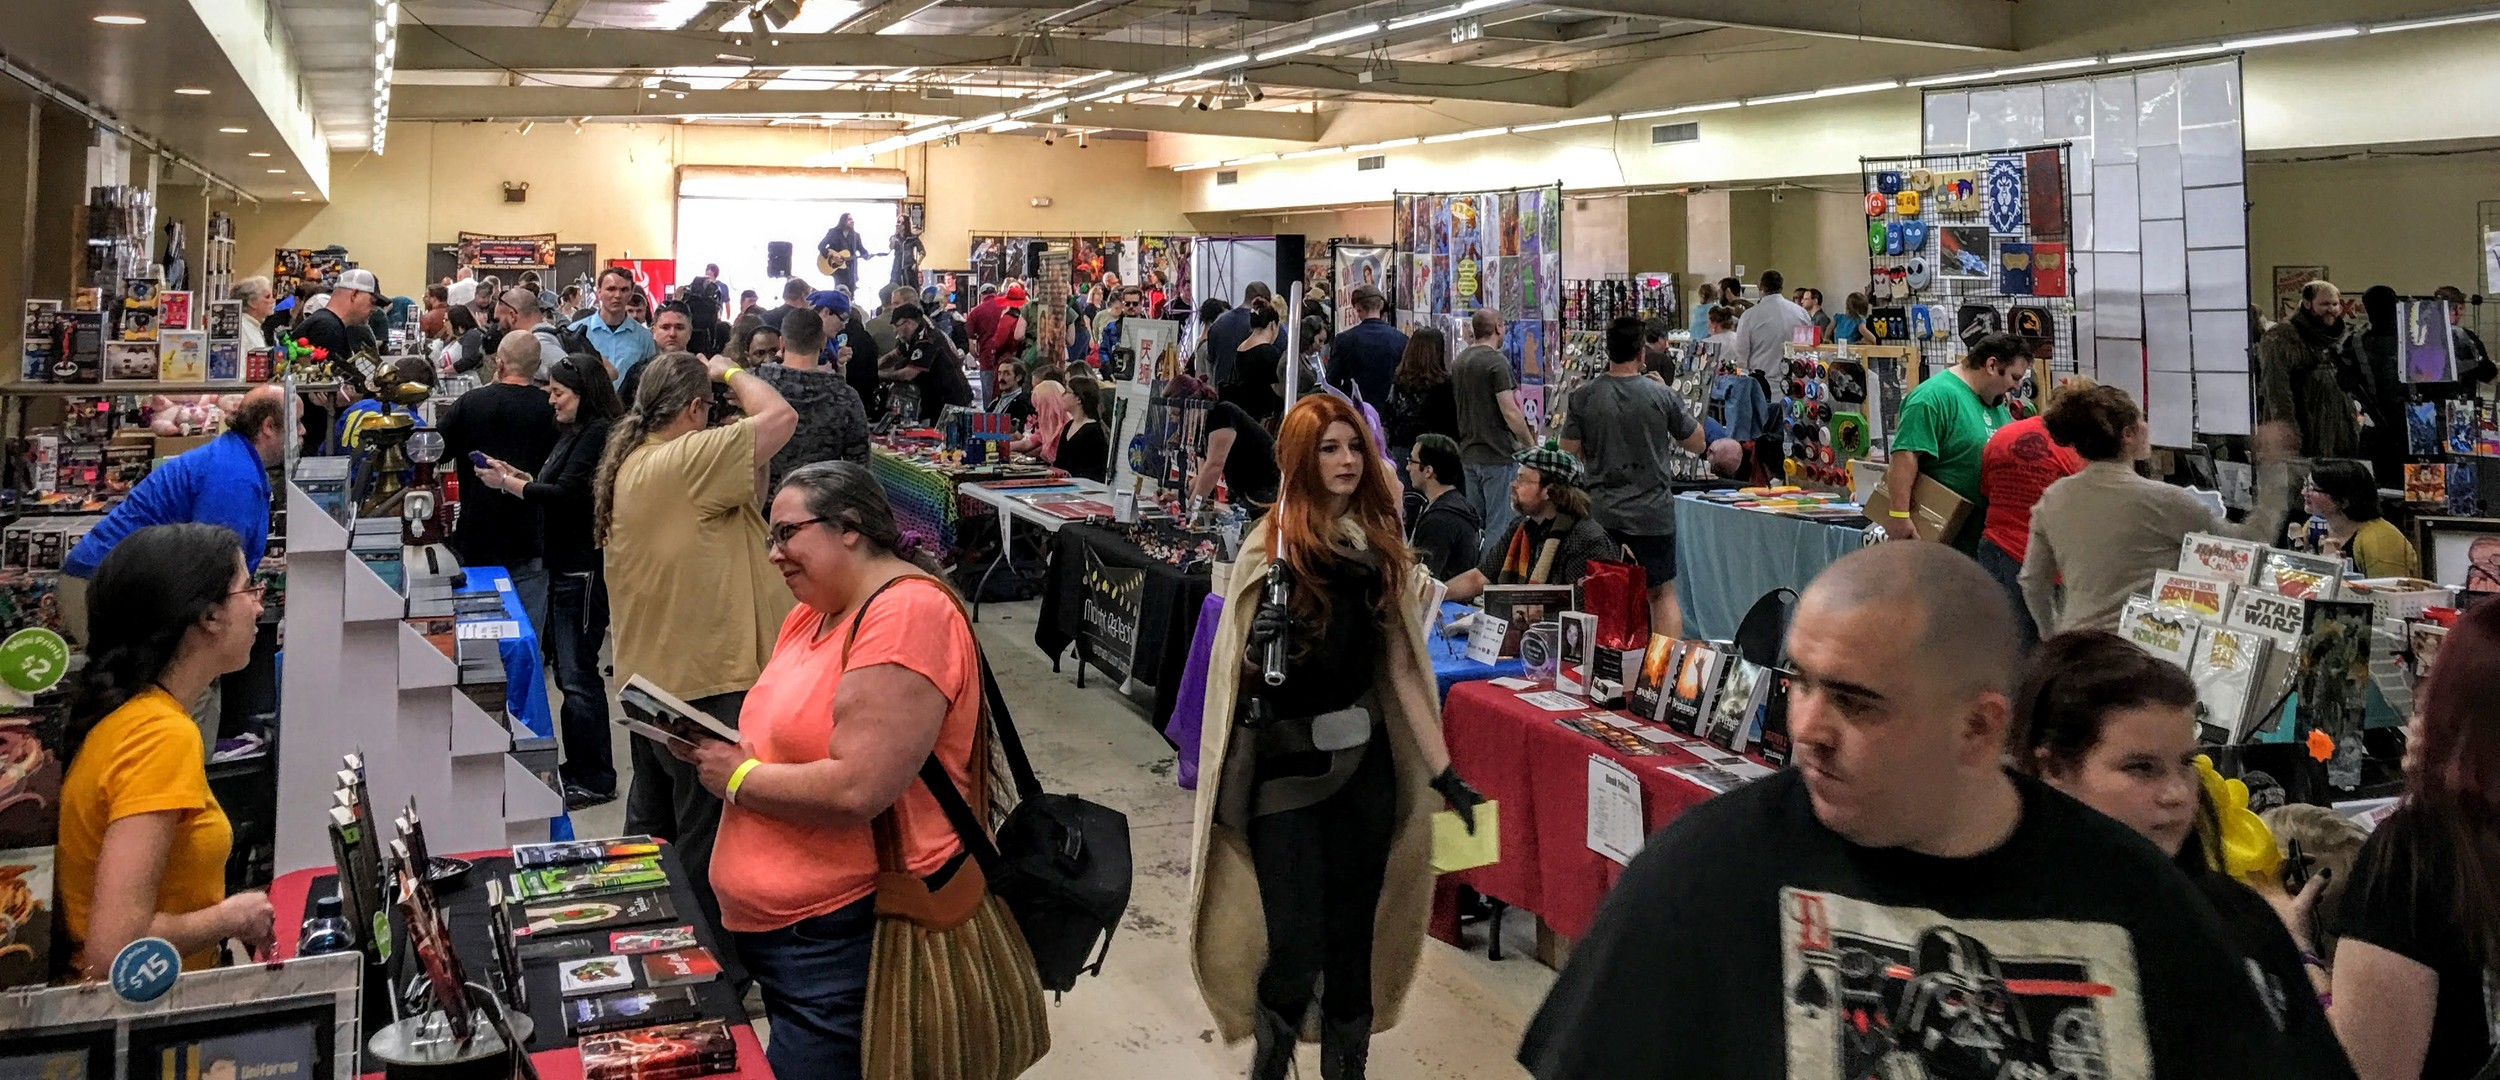 A great shot of the show floor!